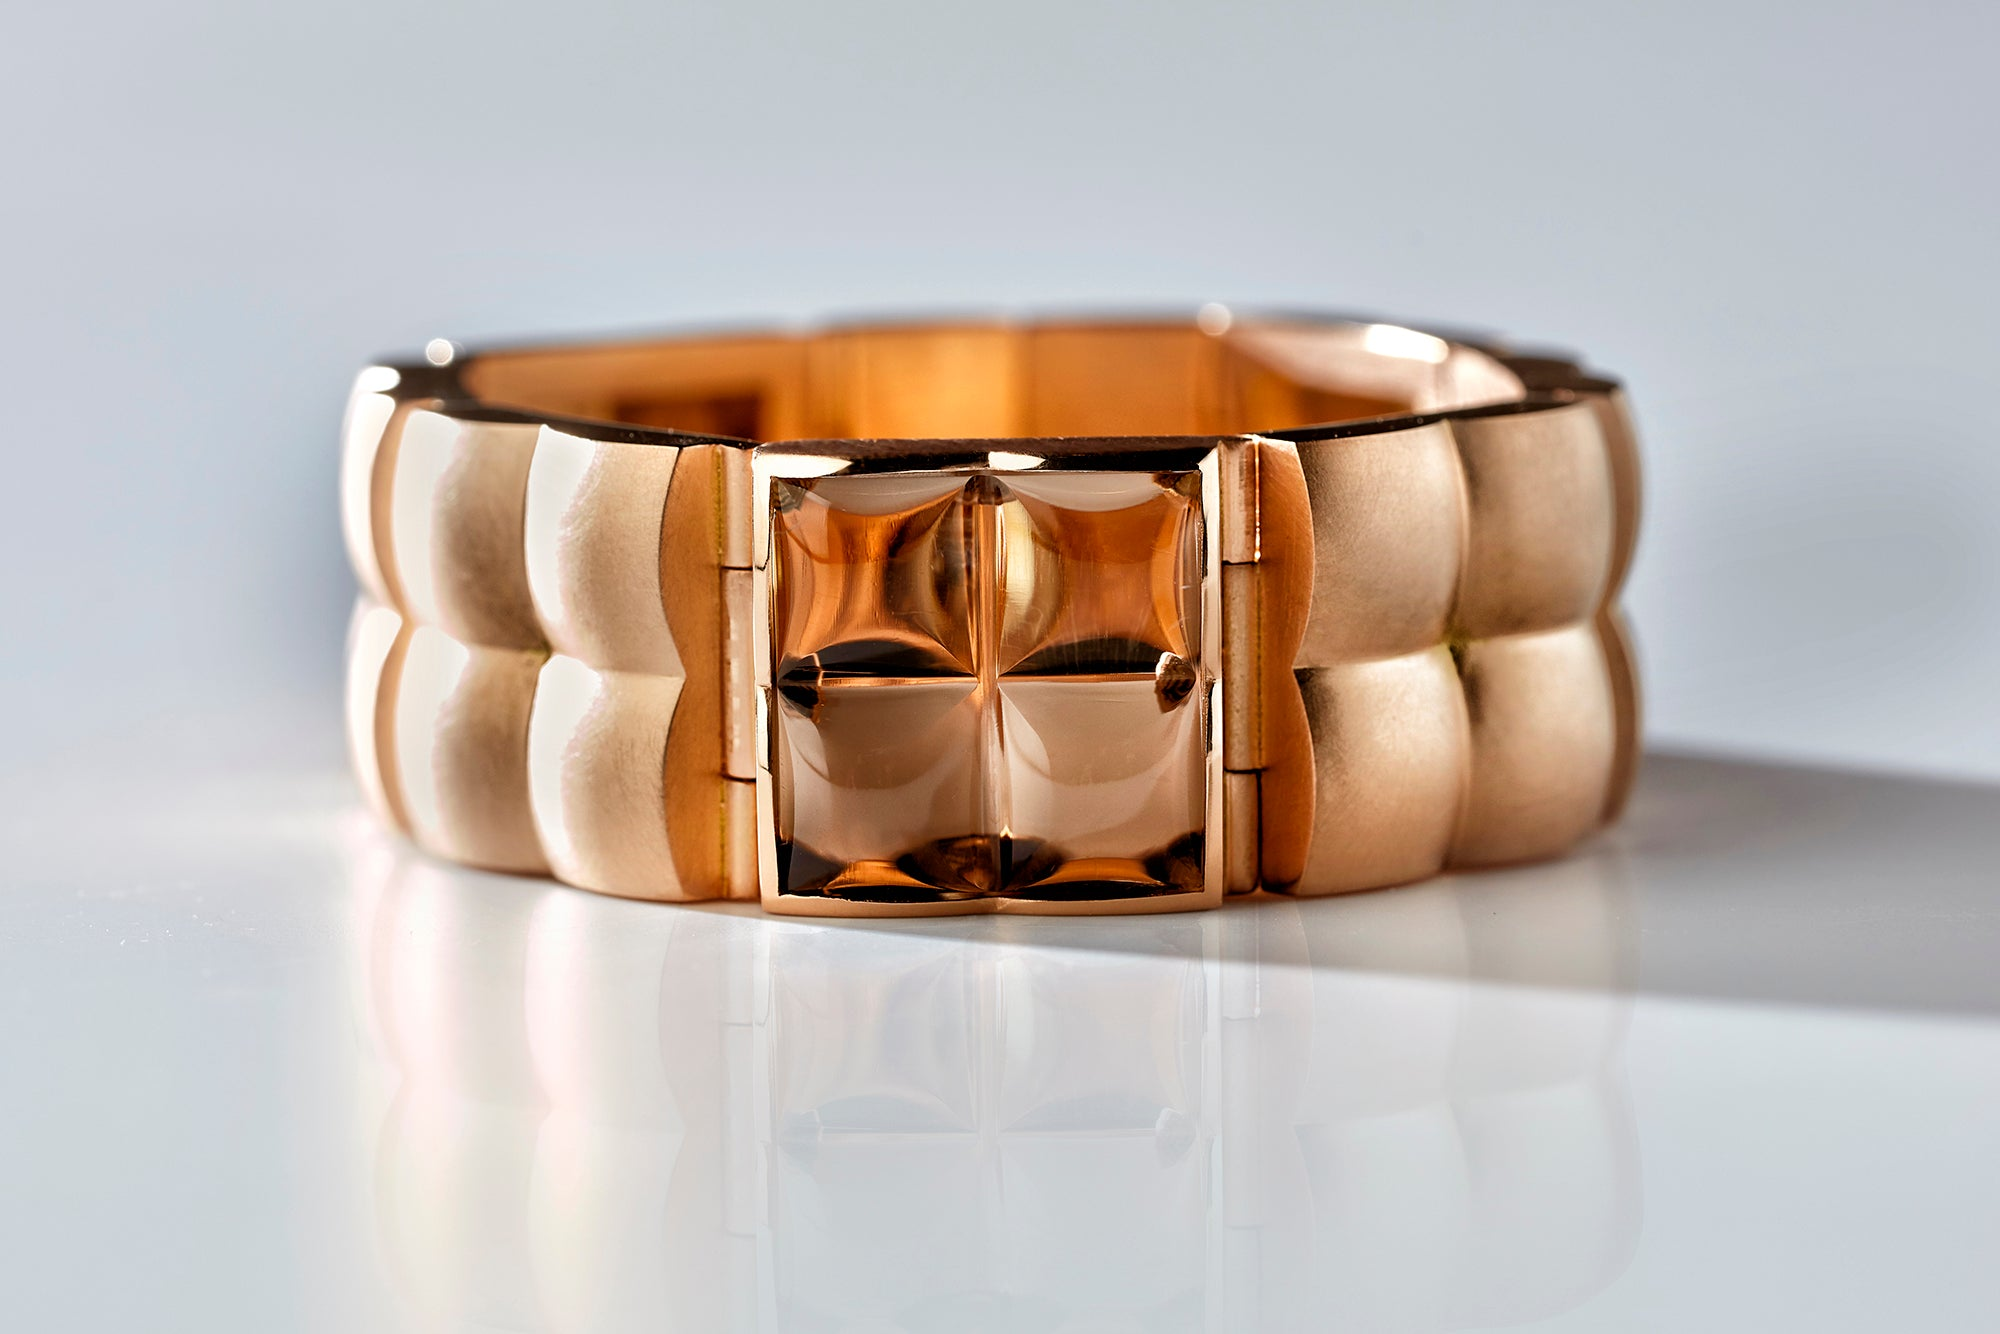 square bracelet, 18k bronze rose gold, smokey quartz, jewellery by rembrandt jordan